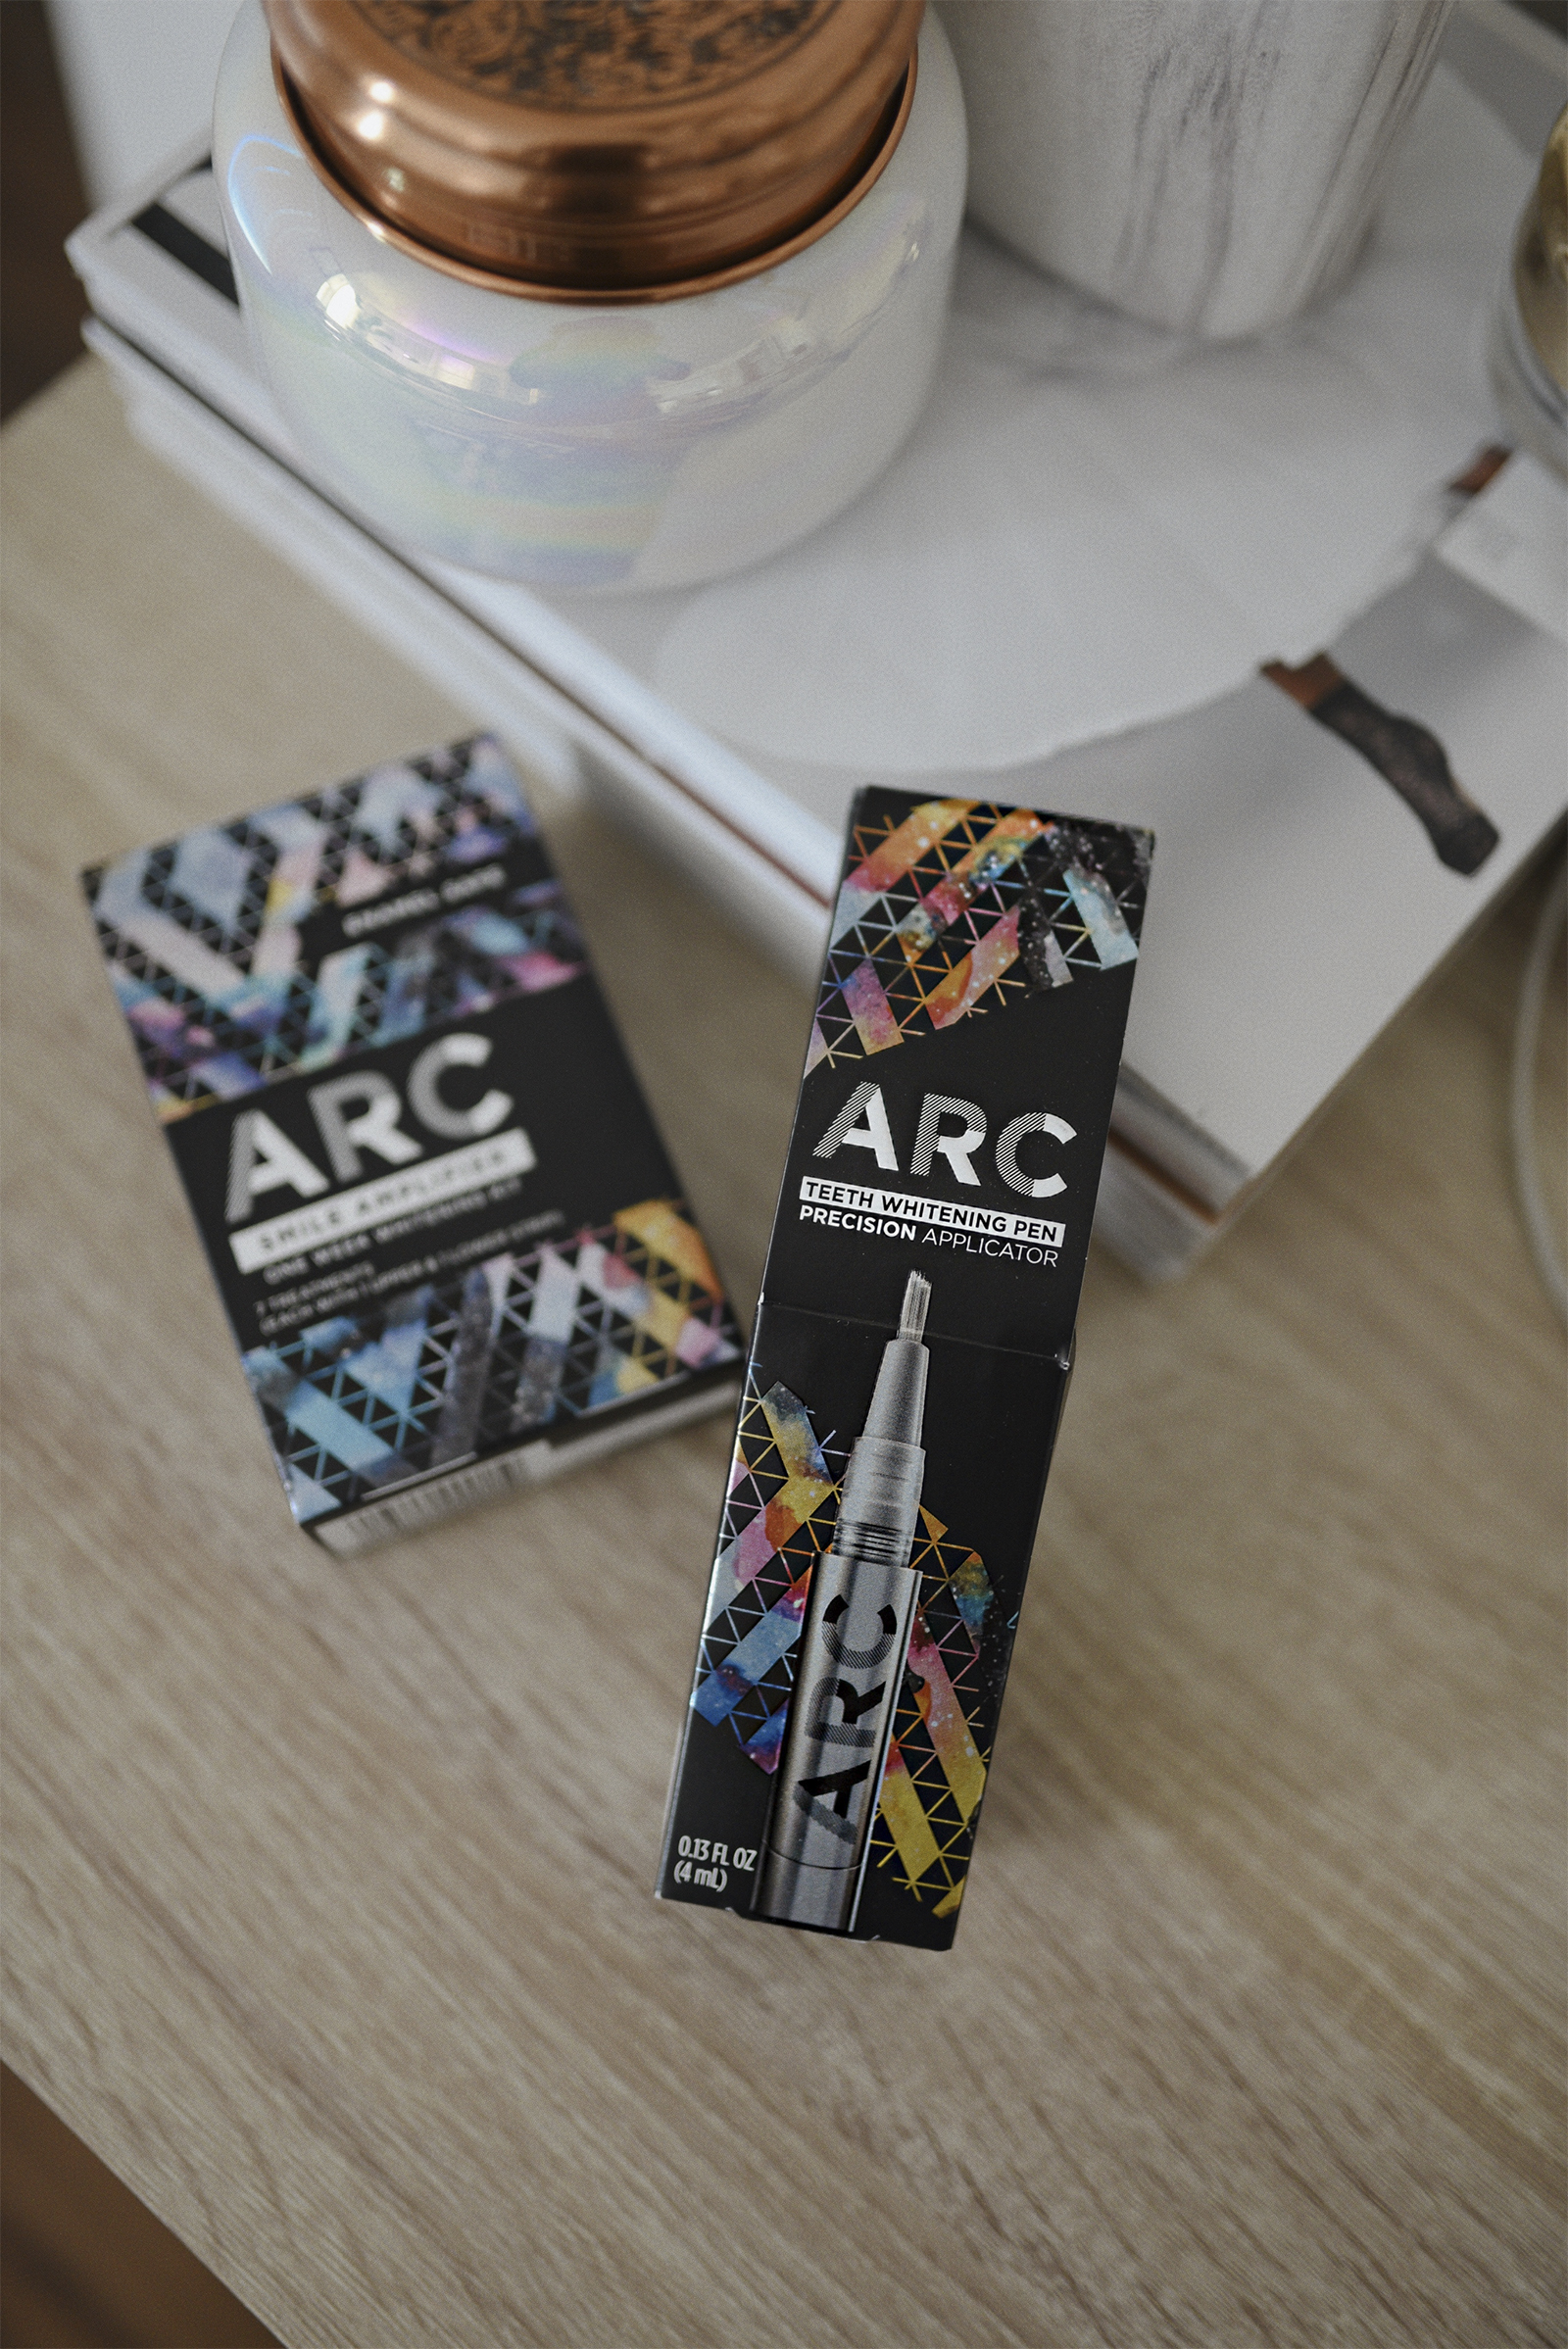 5 Resons Why You Need To Try The New Arc Teeth Whitening Pen